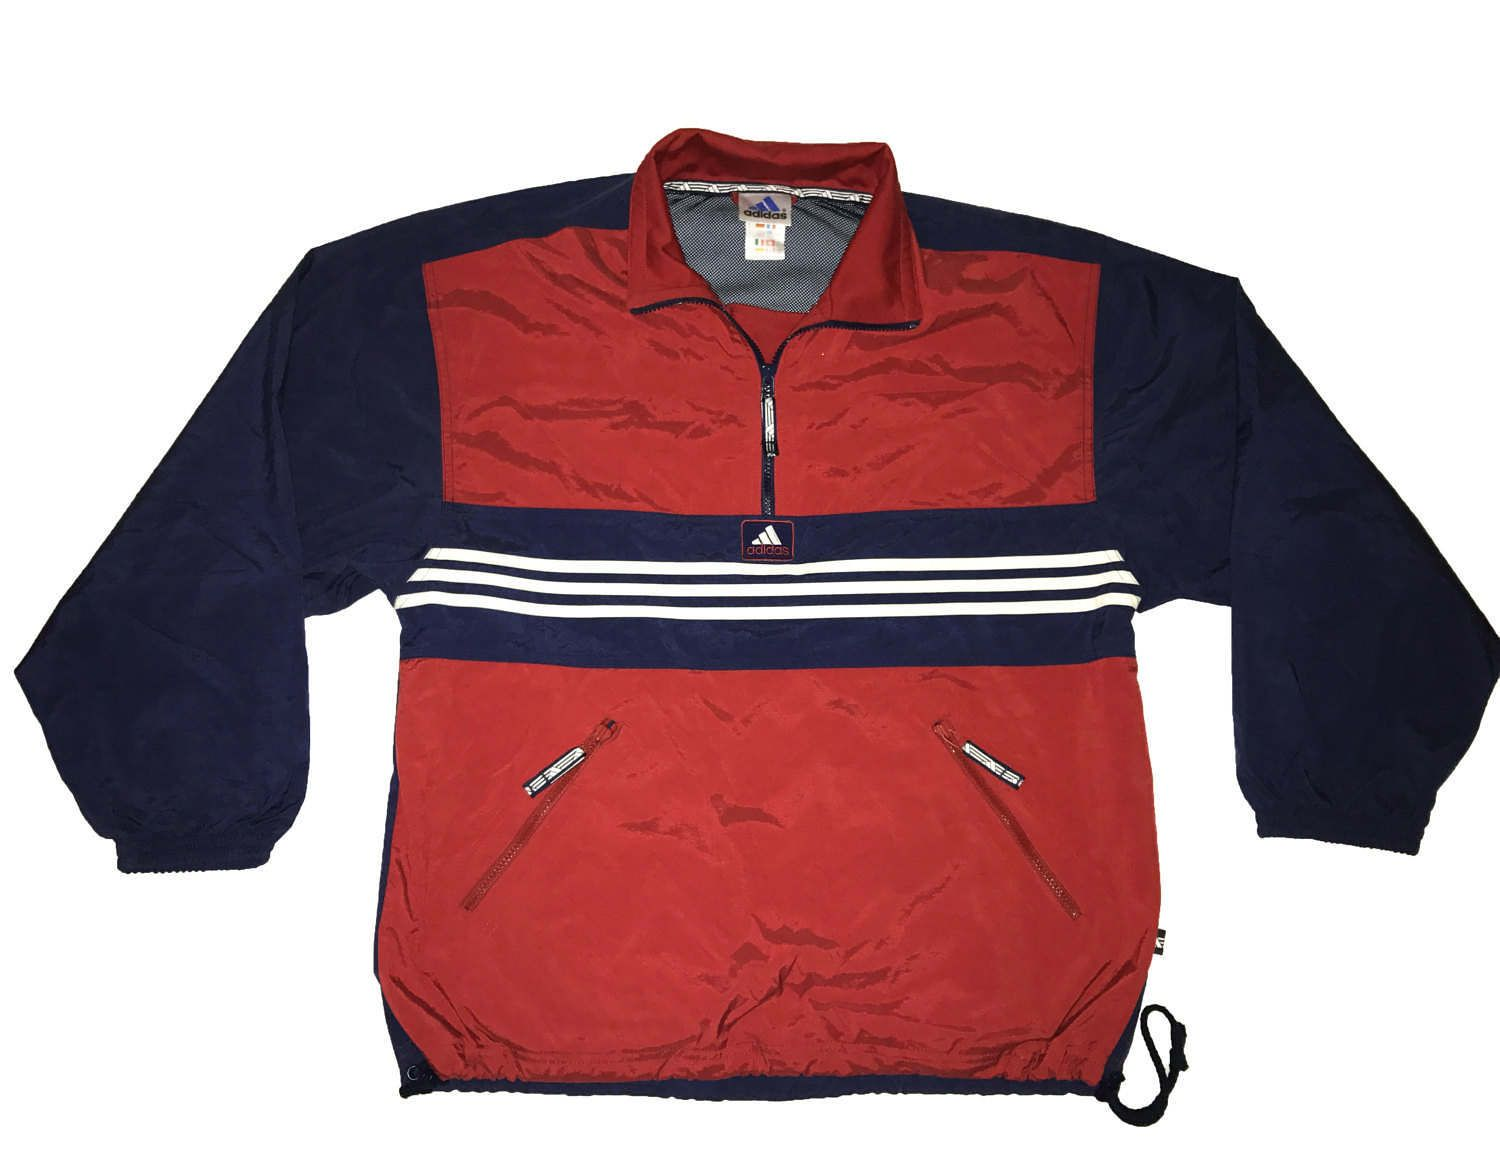 de9032a7d09d Vintage 90s Adidas 1 4 pullover jacket Color Block Blue Red White Size S M  D4 by VapeoVintage on Etsy